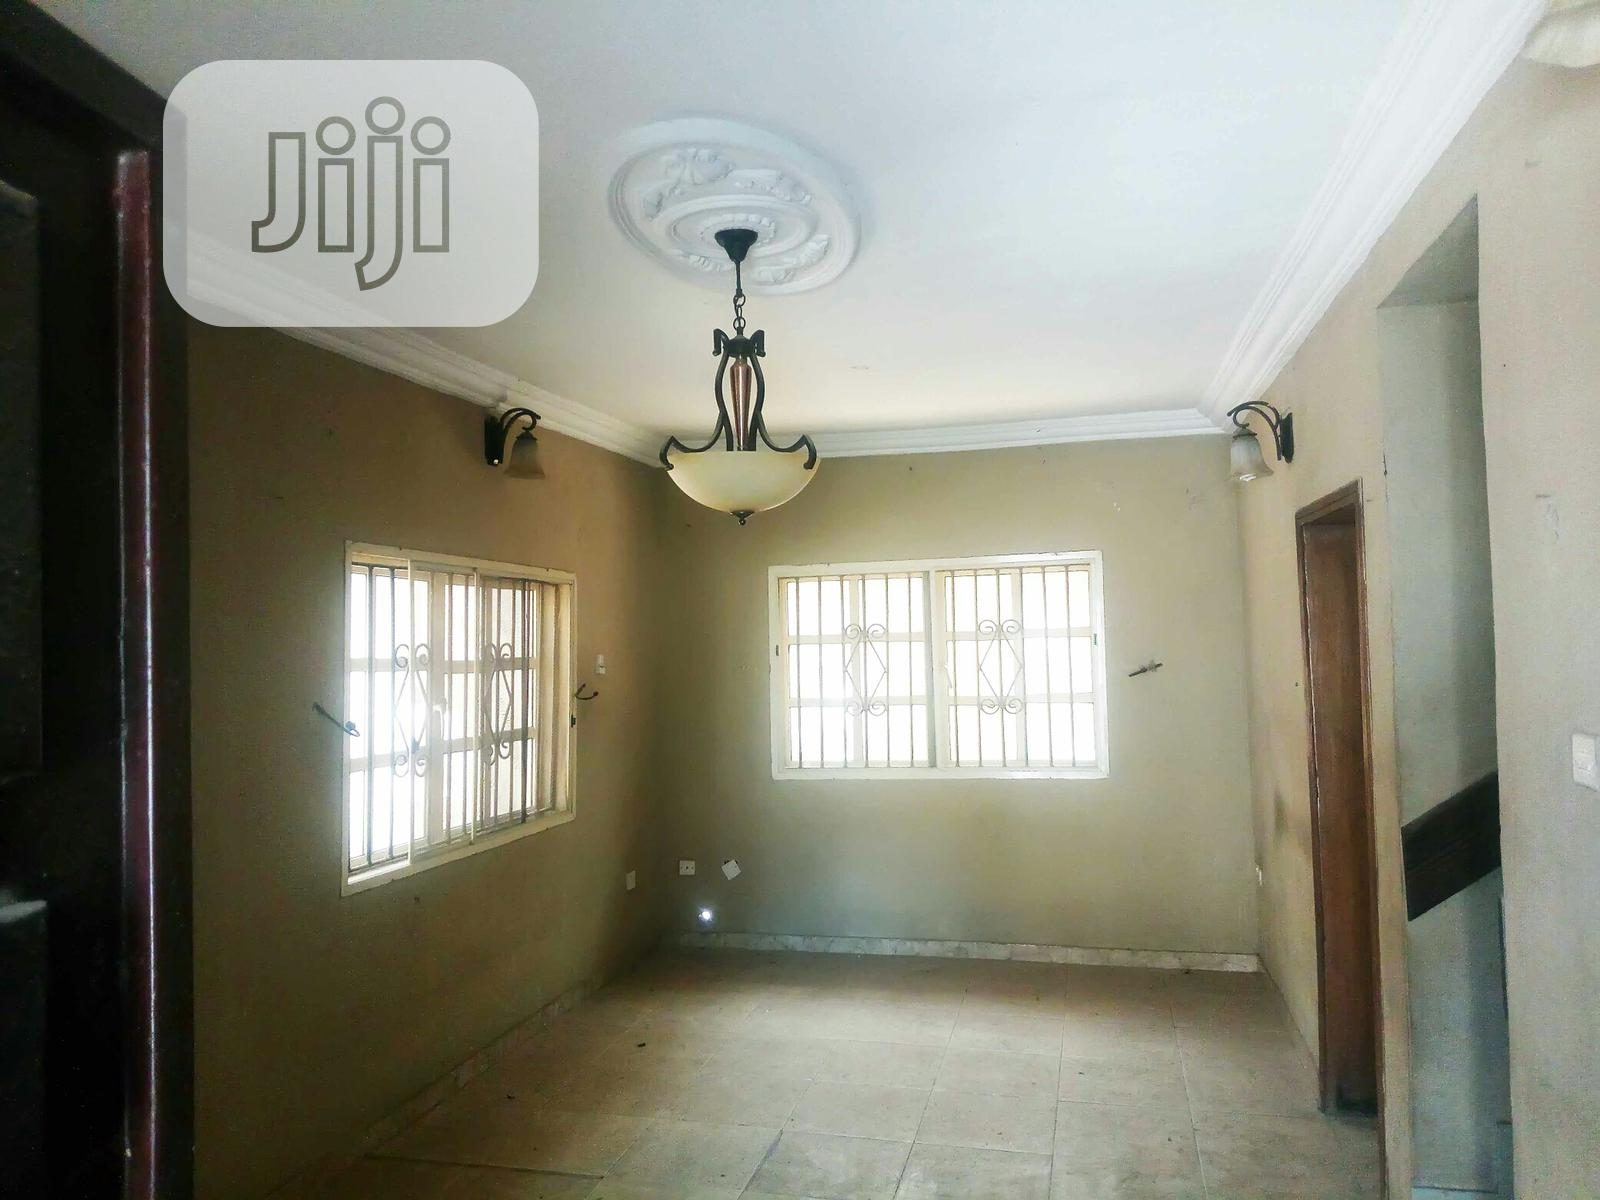 4 Bedroom Bungalow For Sale | Houses & Apartments For Sale for sale in Alimosho, Lagos State, Nigeria